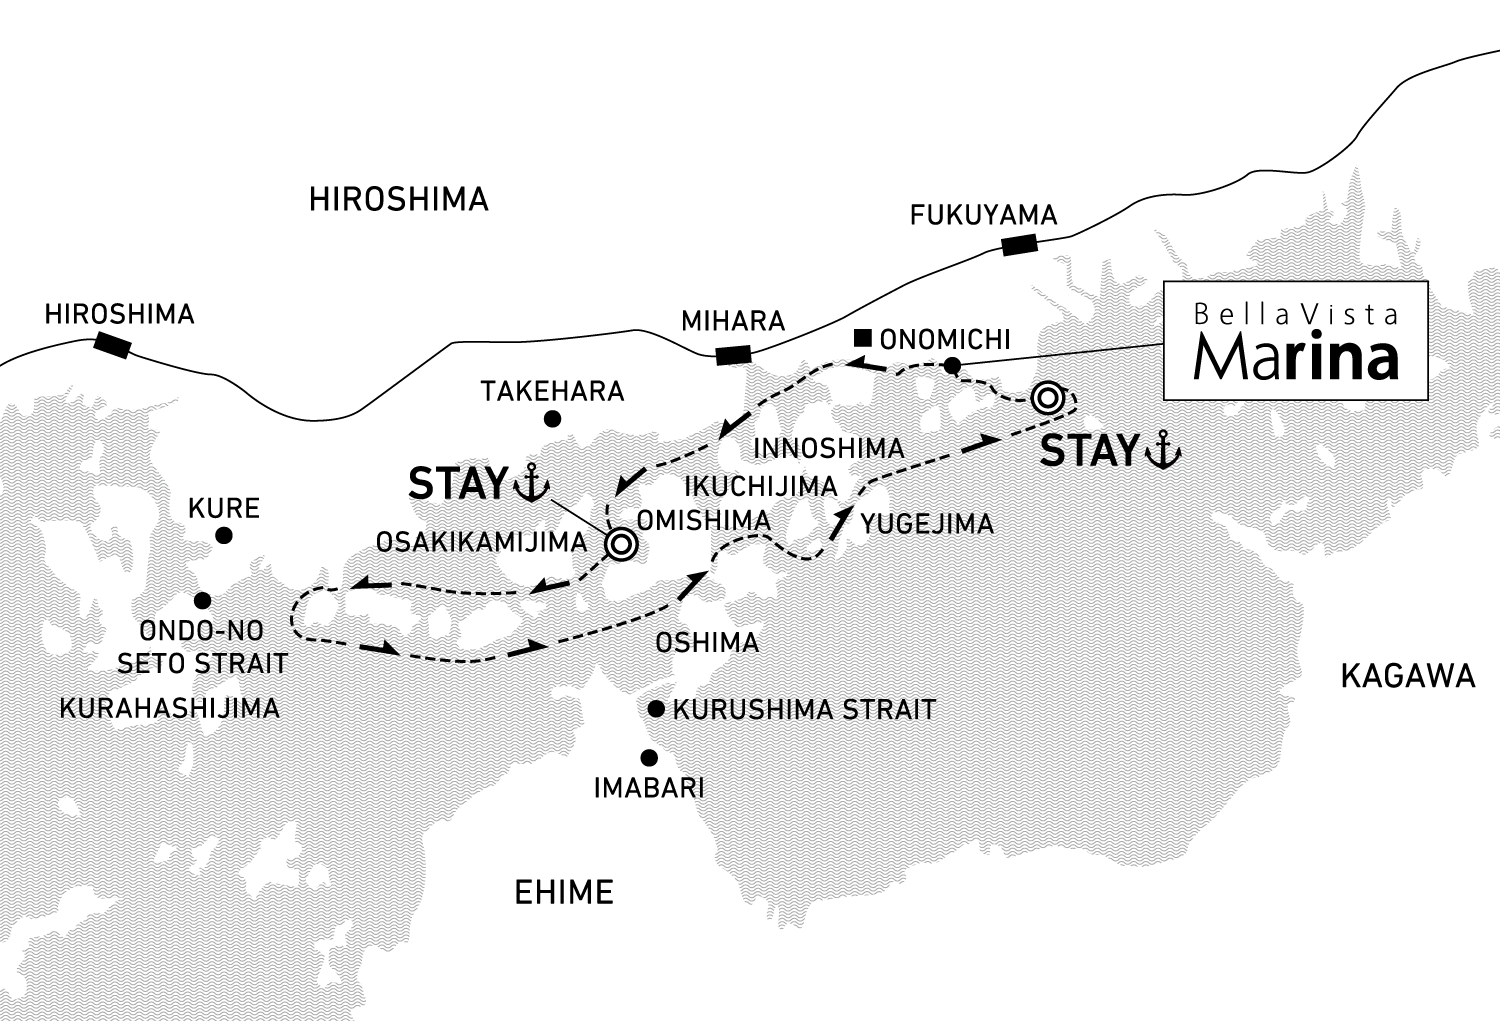 A three-day voyage to discover the history of Japanese kaizoku pirates and local culinary culture 2 nights / anchor offshore at Omishima and Tomonoura